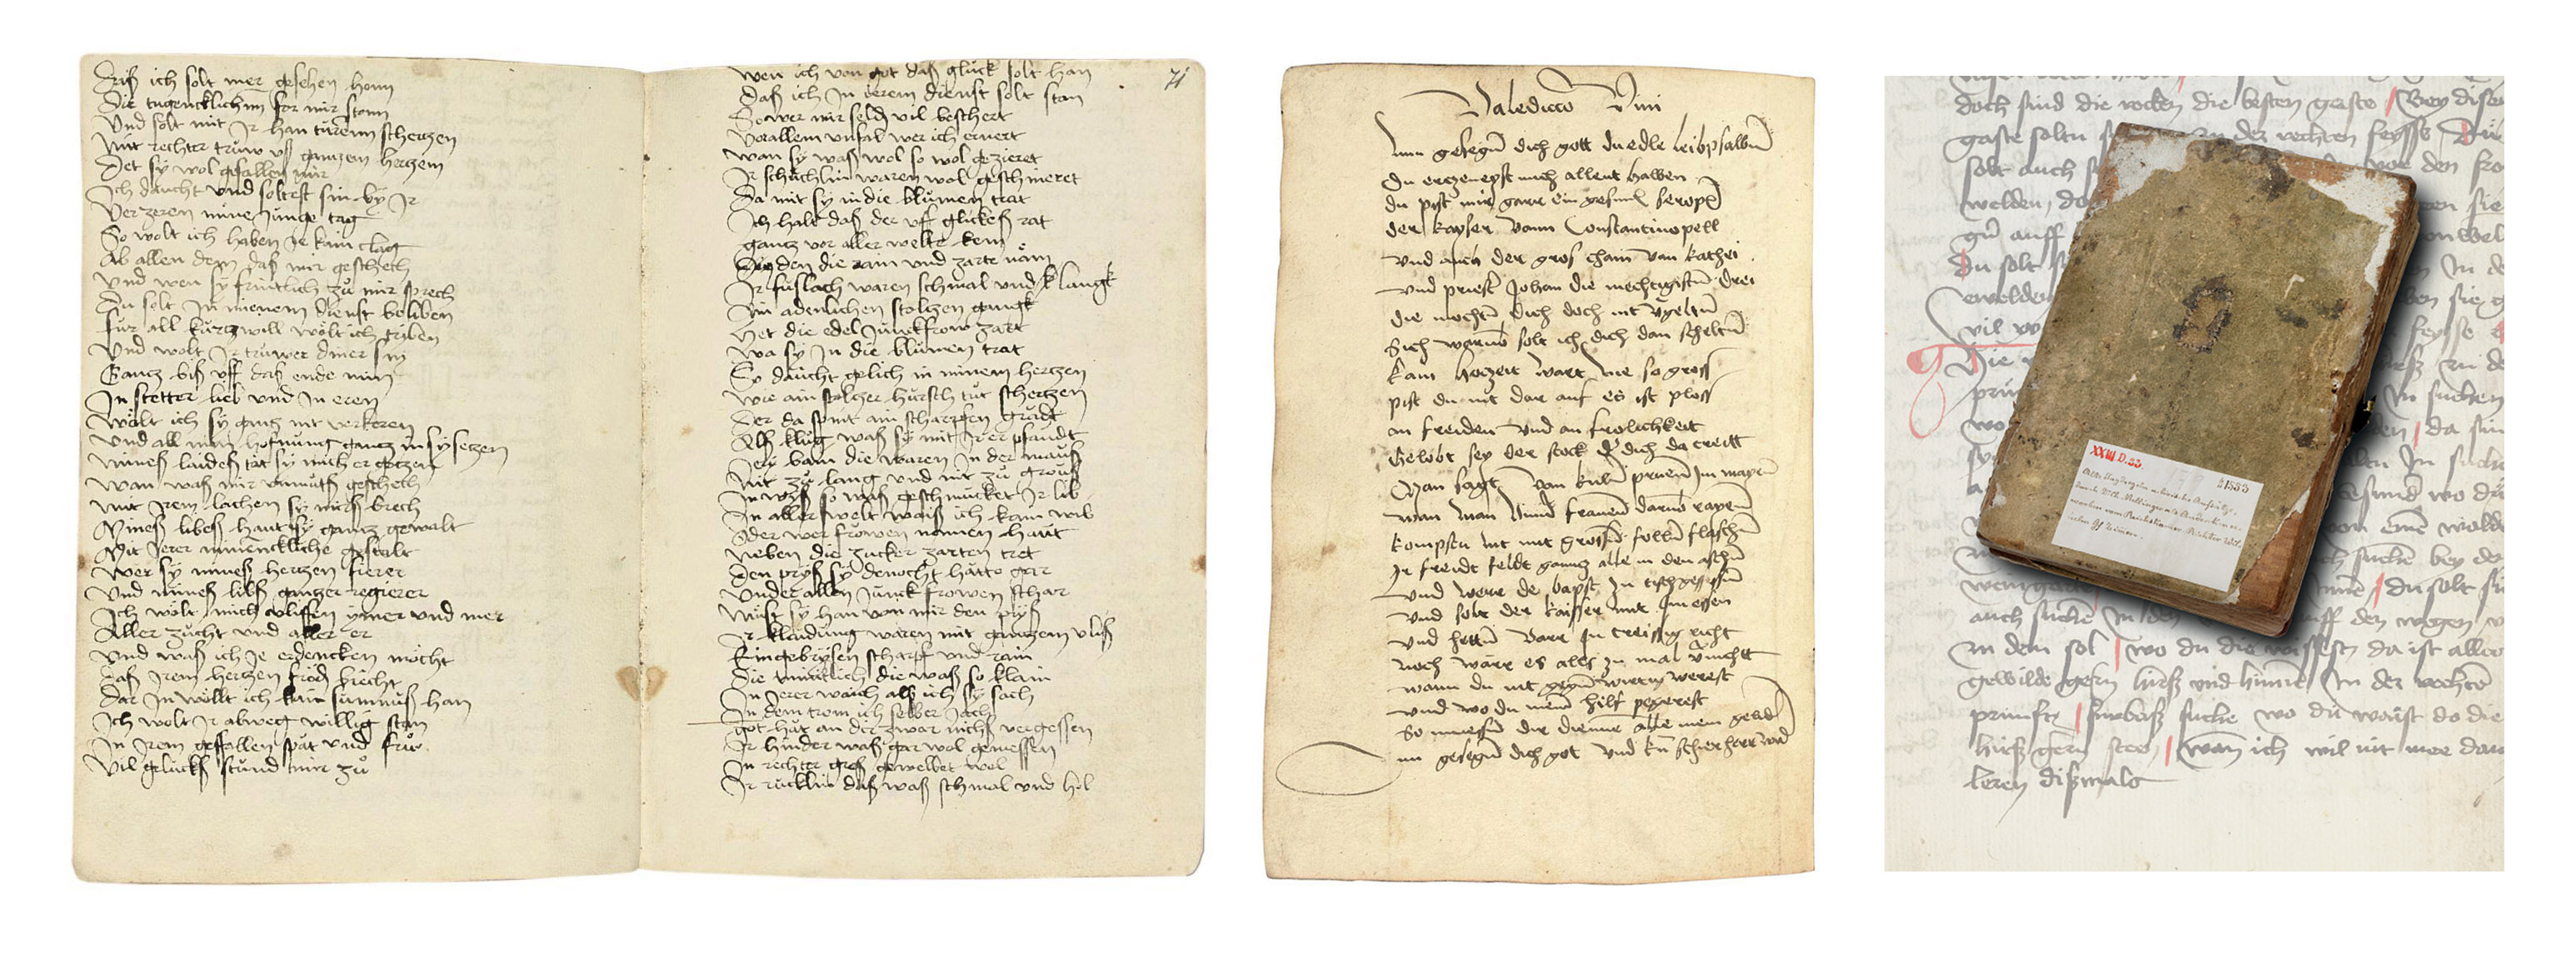 LITERARY SAMMELBAND, including Minne songs, Klopfan verses, toasts, hunting texts, the language of flowers, obscene poems and fables, in German, MANUSCRIPT ON PAPER